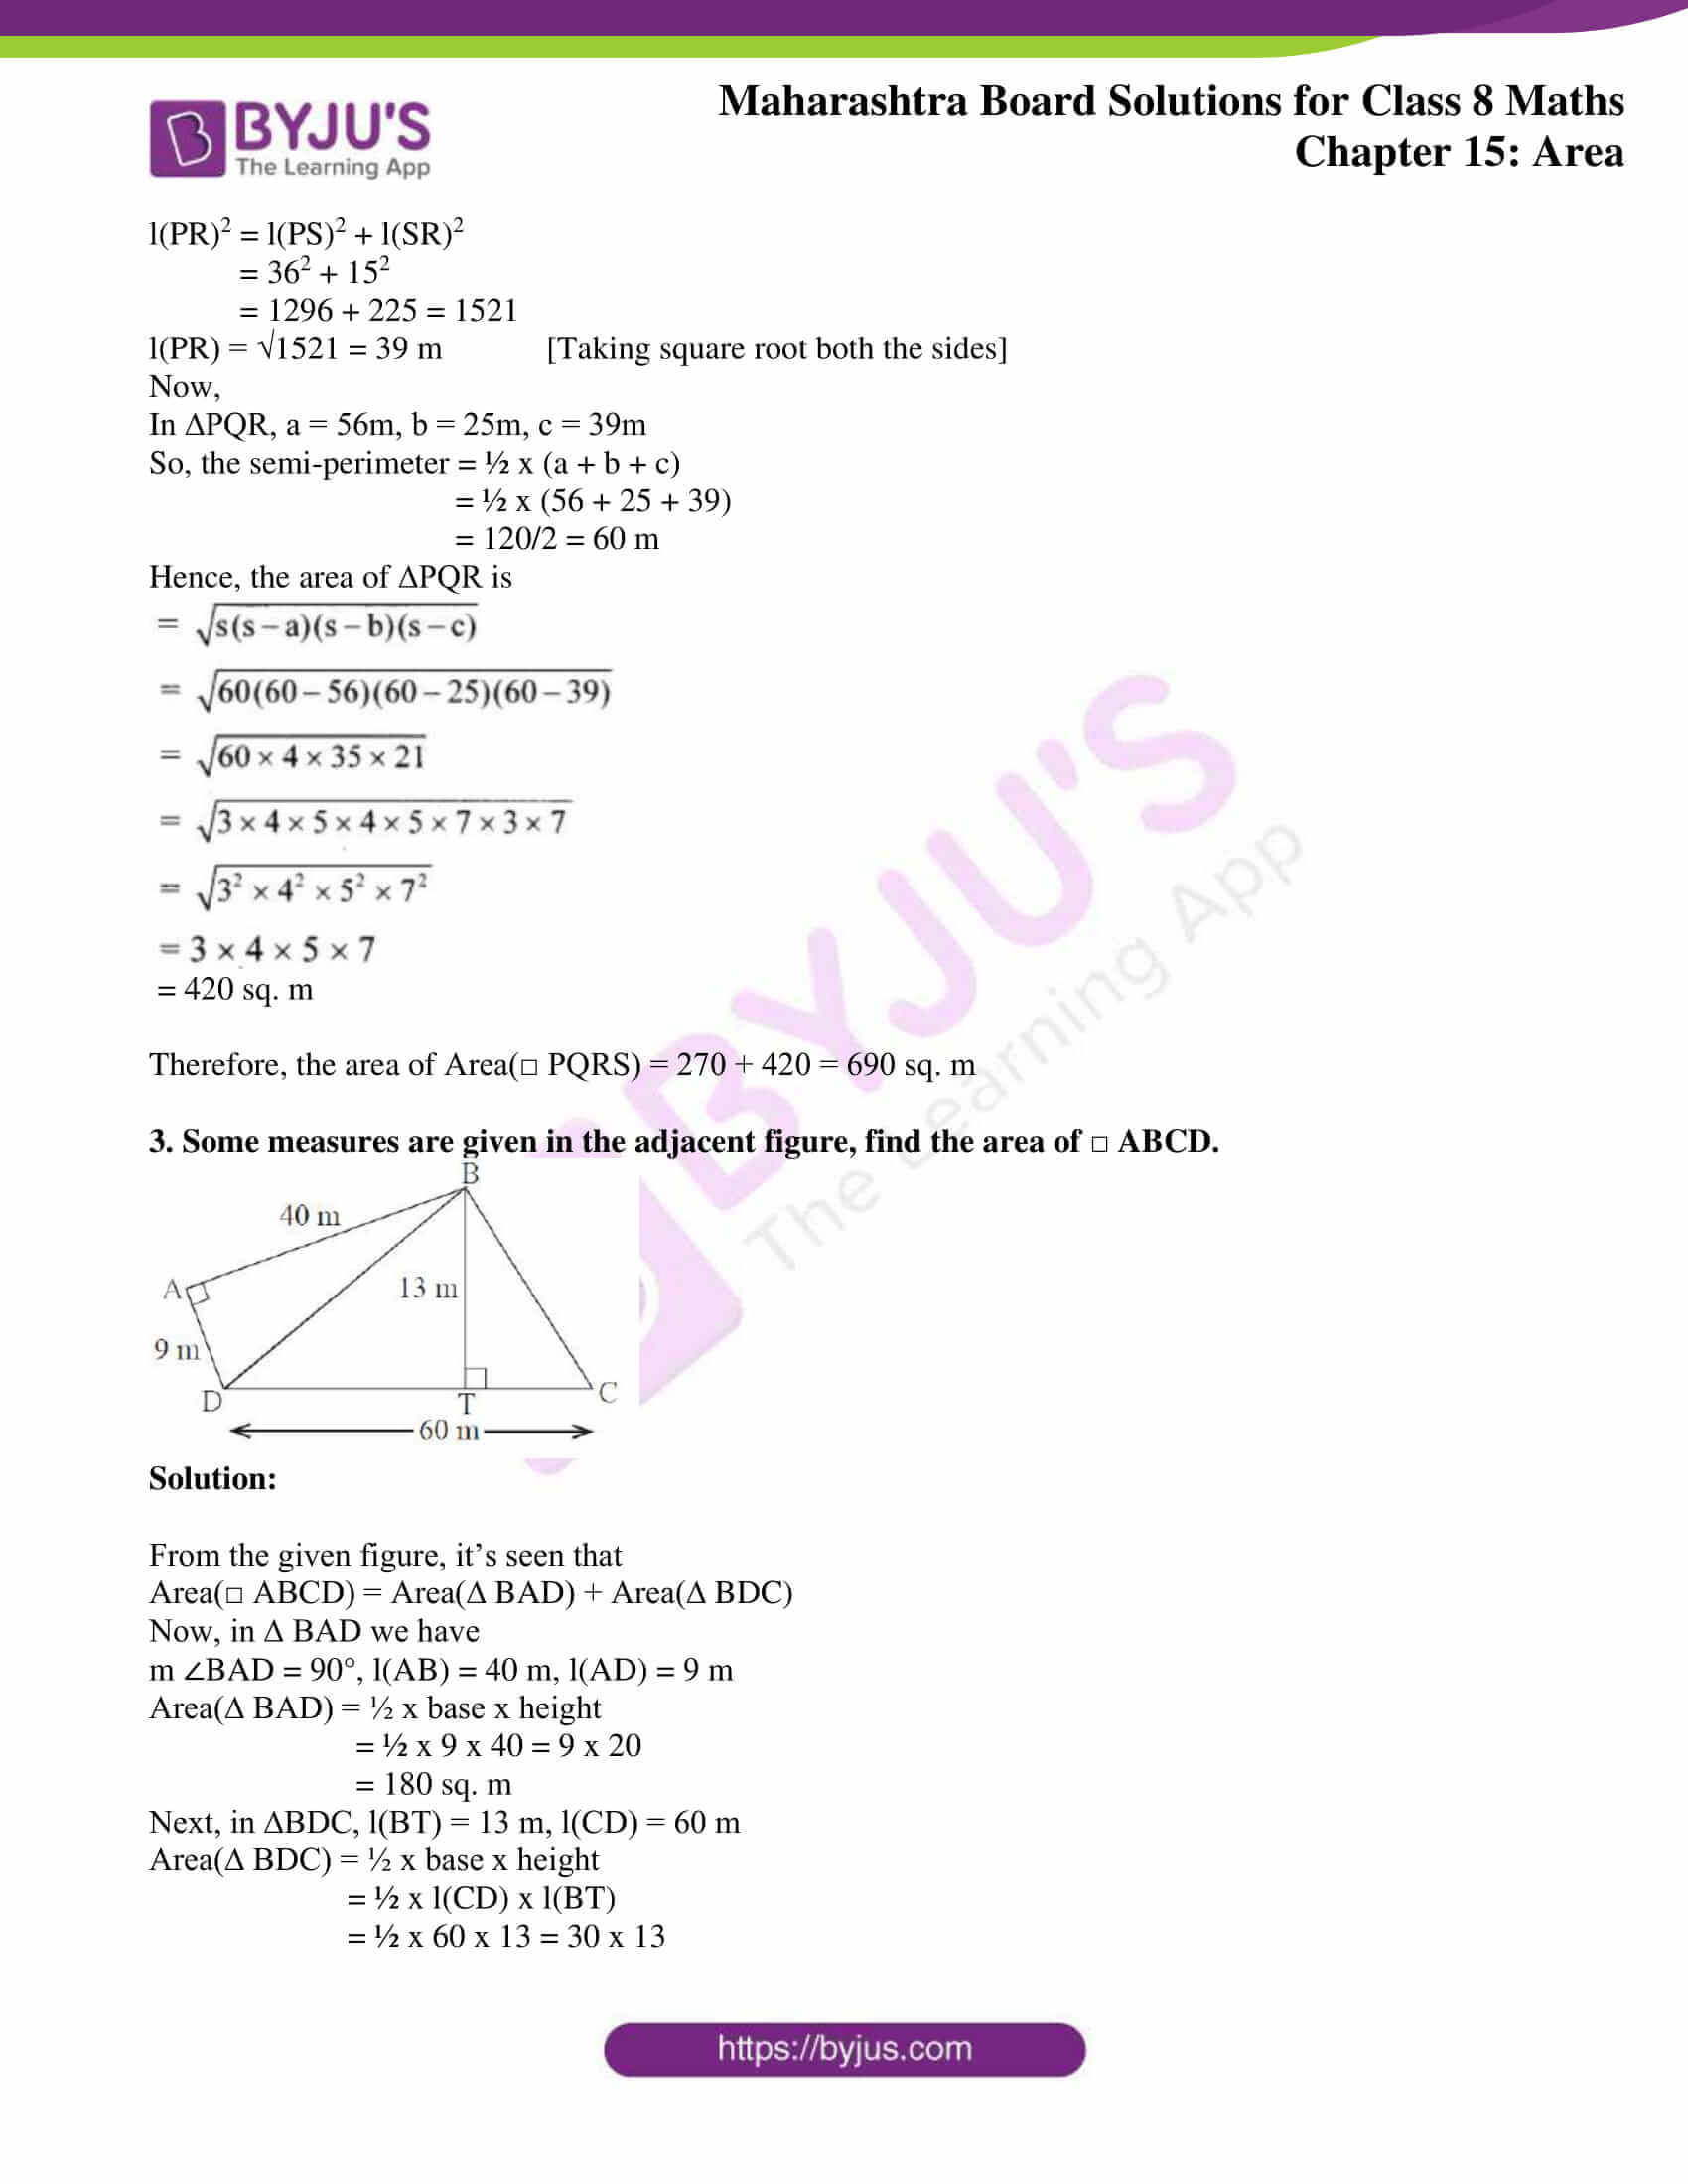 msbshse sol for class 8 maths chapter 15 07